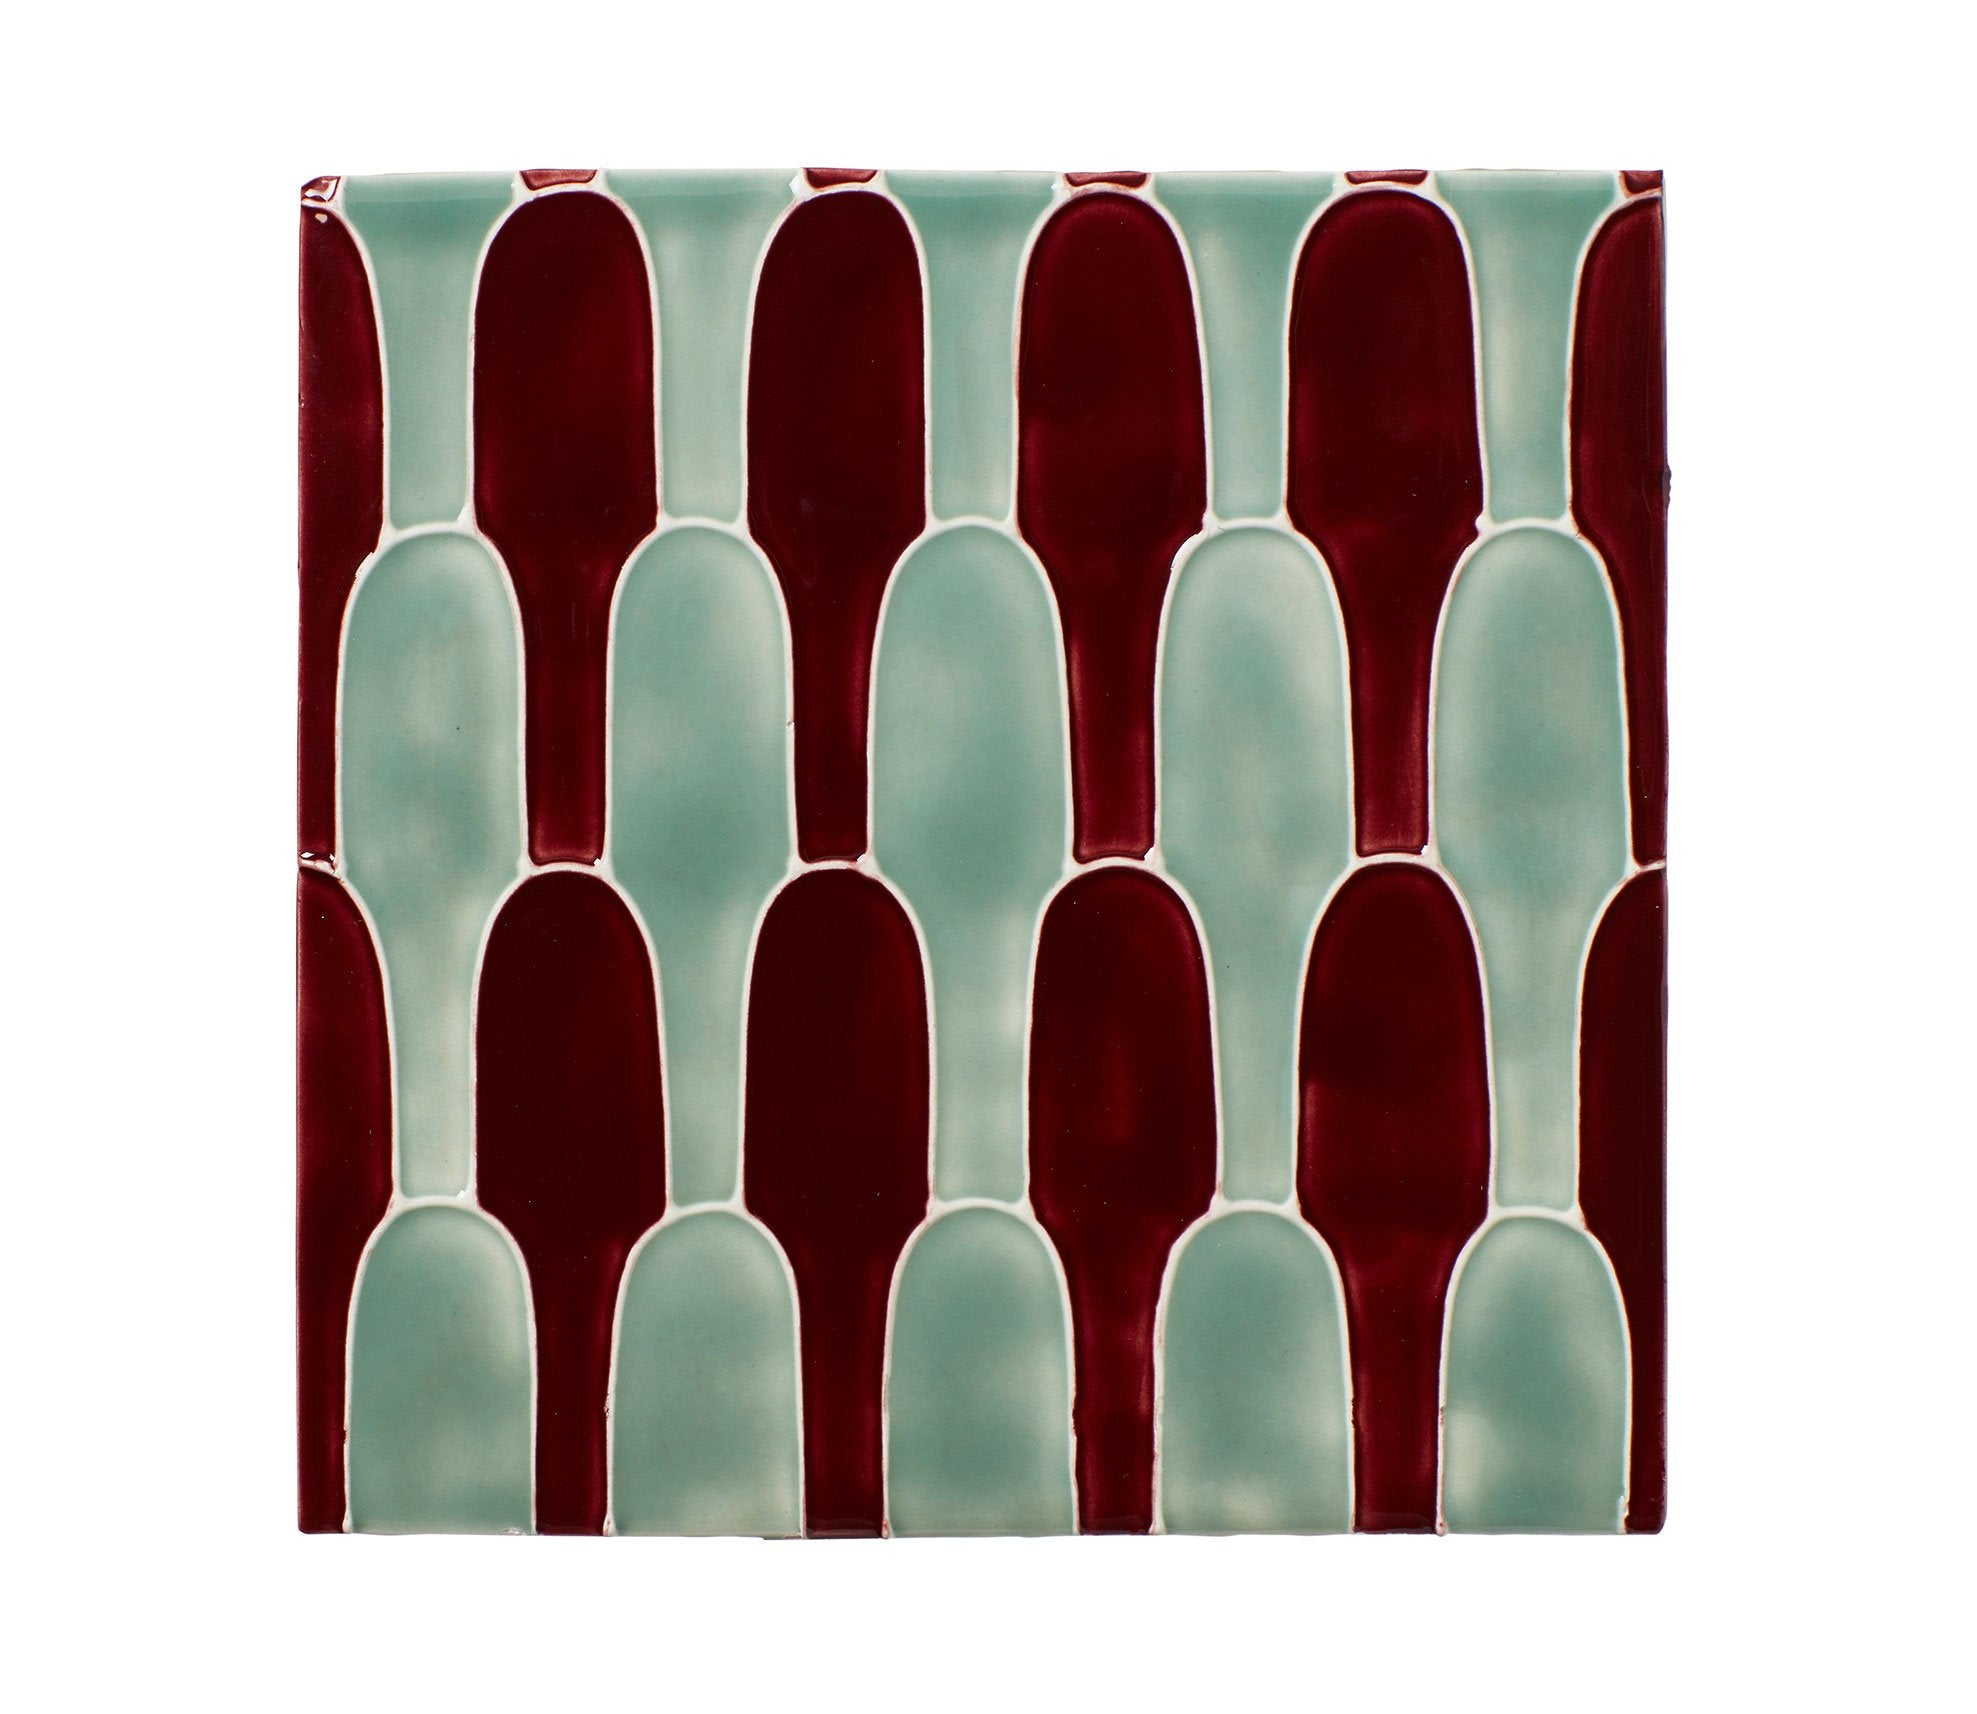 Hanley Tube Lined Decorative Tiles Product Image 24